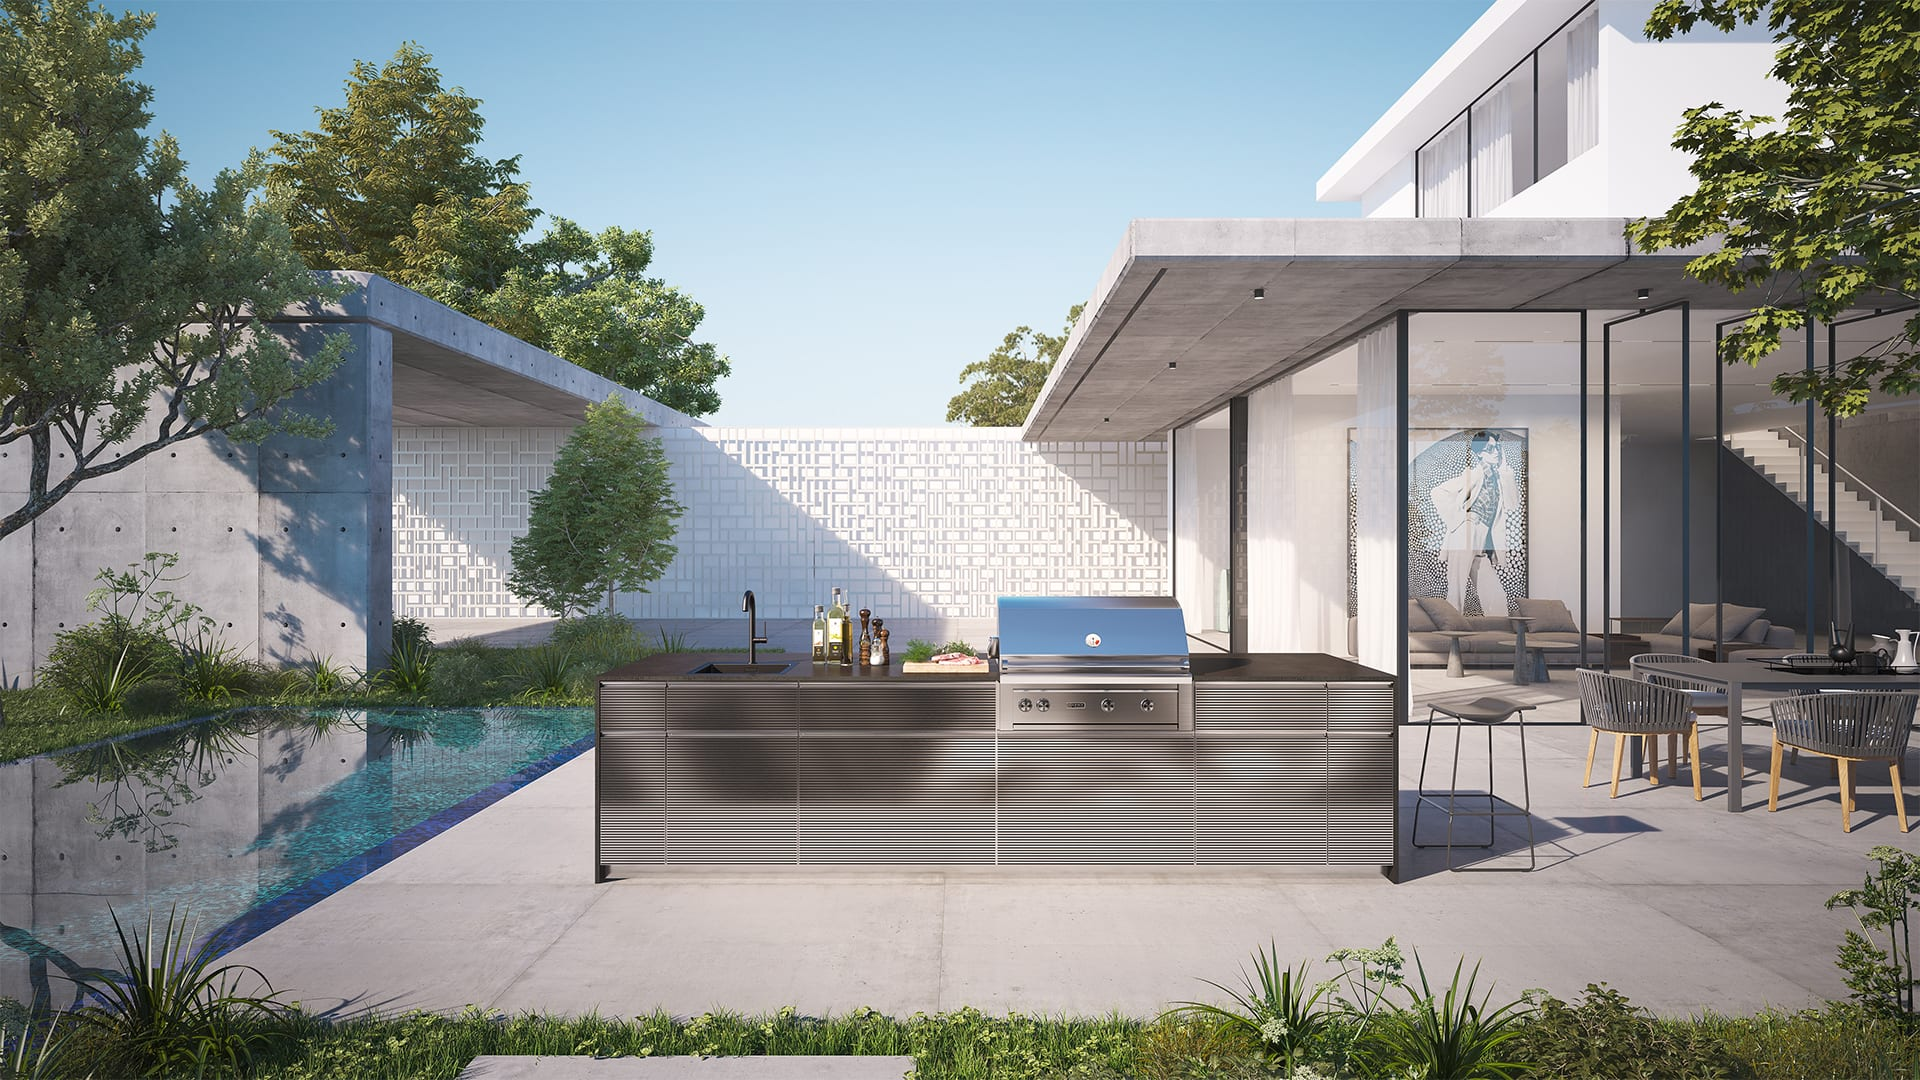 Maayan-Golan_Architectural-Visualization_product-visualization_Kliens-kitchens_ Outdoor-kitchen-Outopia_02